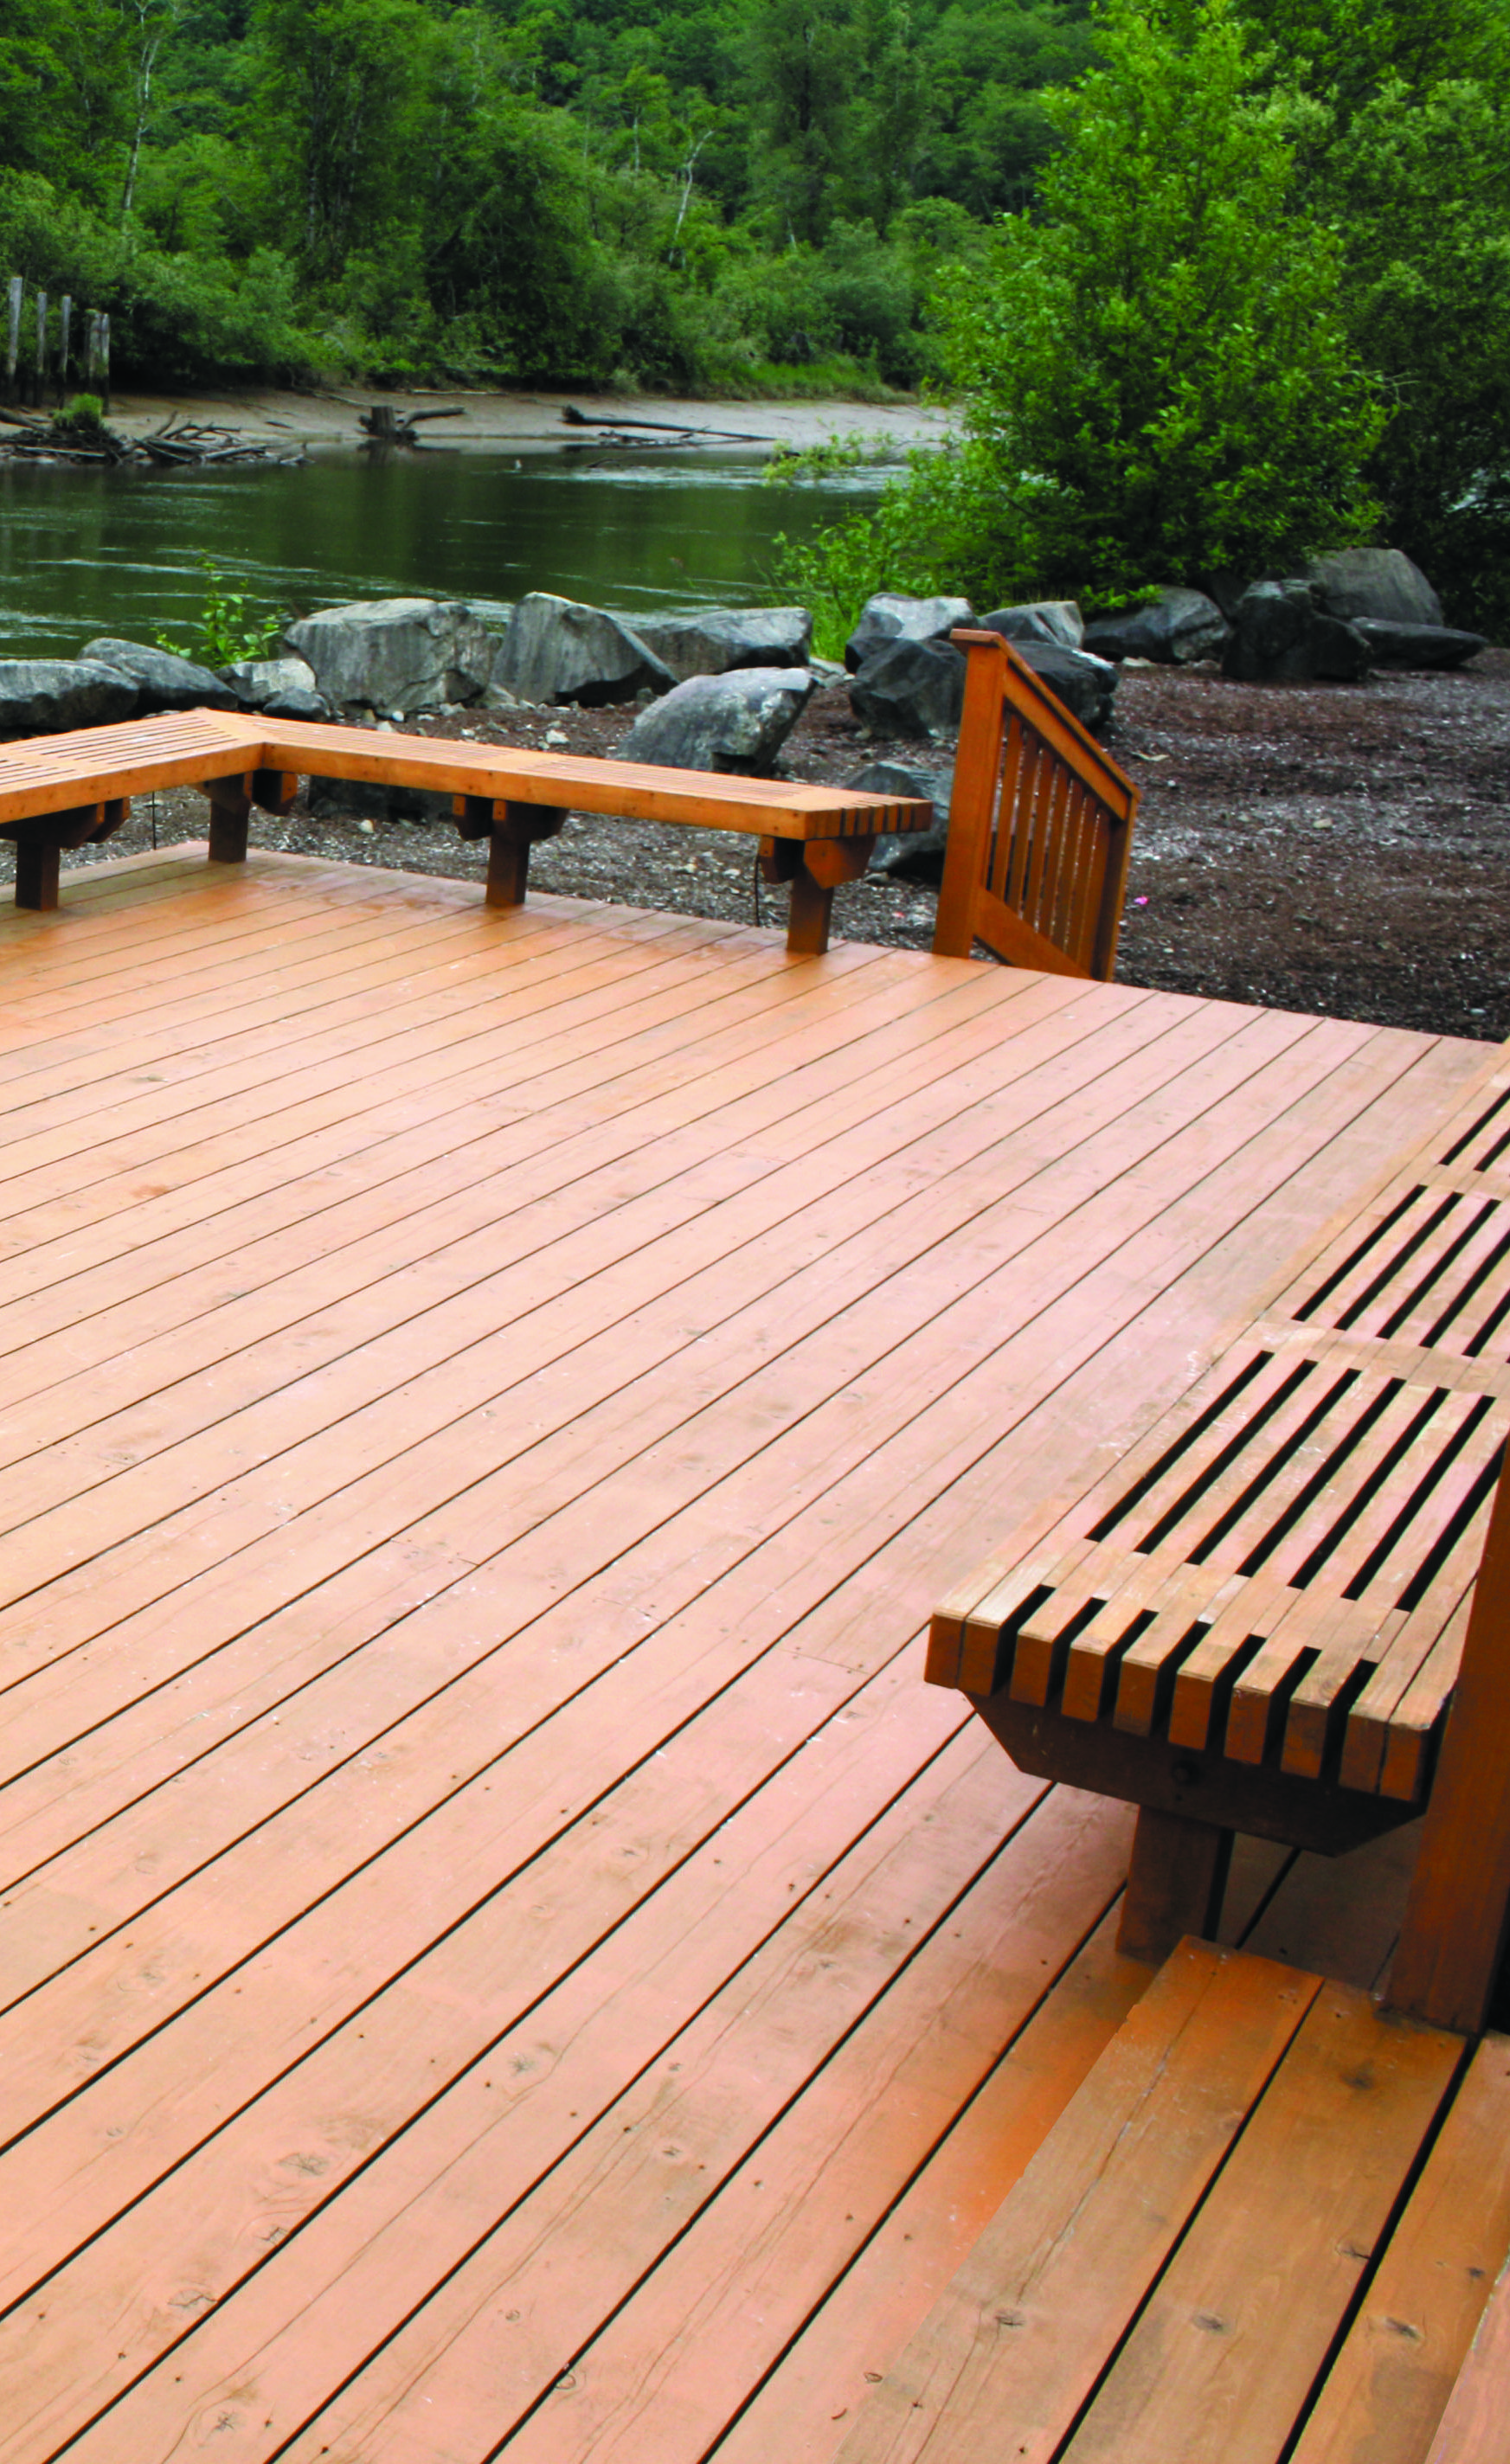 Create A Scenic Outdoor Setting With Red Cedar Decking Easy To Paint And Stain This Distinctive Material Has Unique Texture Natural